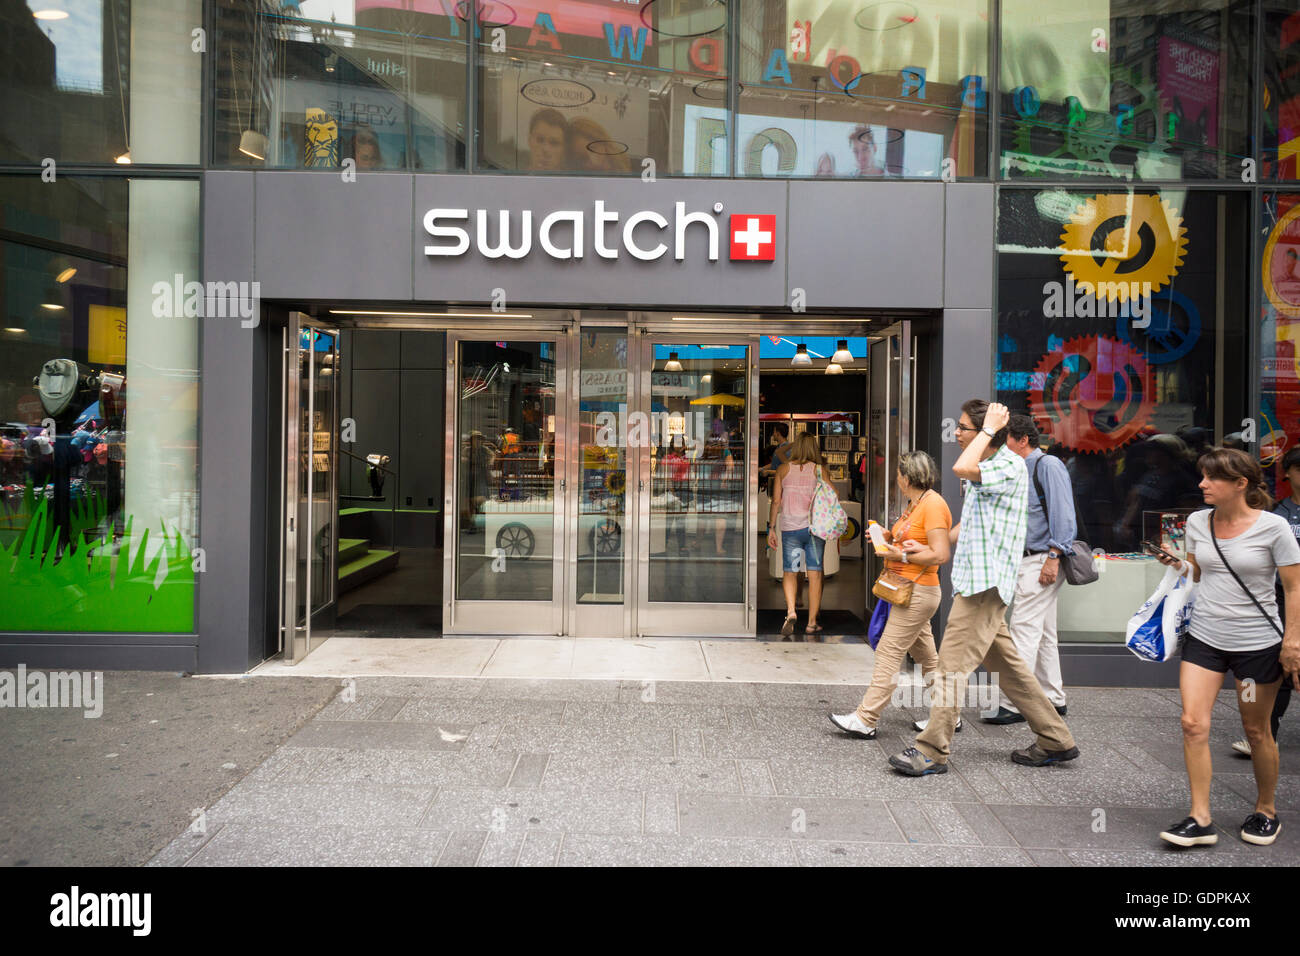 The Swatch store in Times Square in New York on Friday, July 15, 2016. The Swatch Group AG announced that during - Stock Image